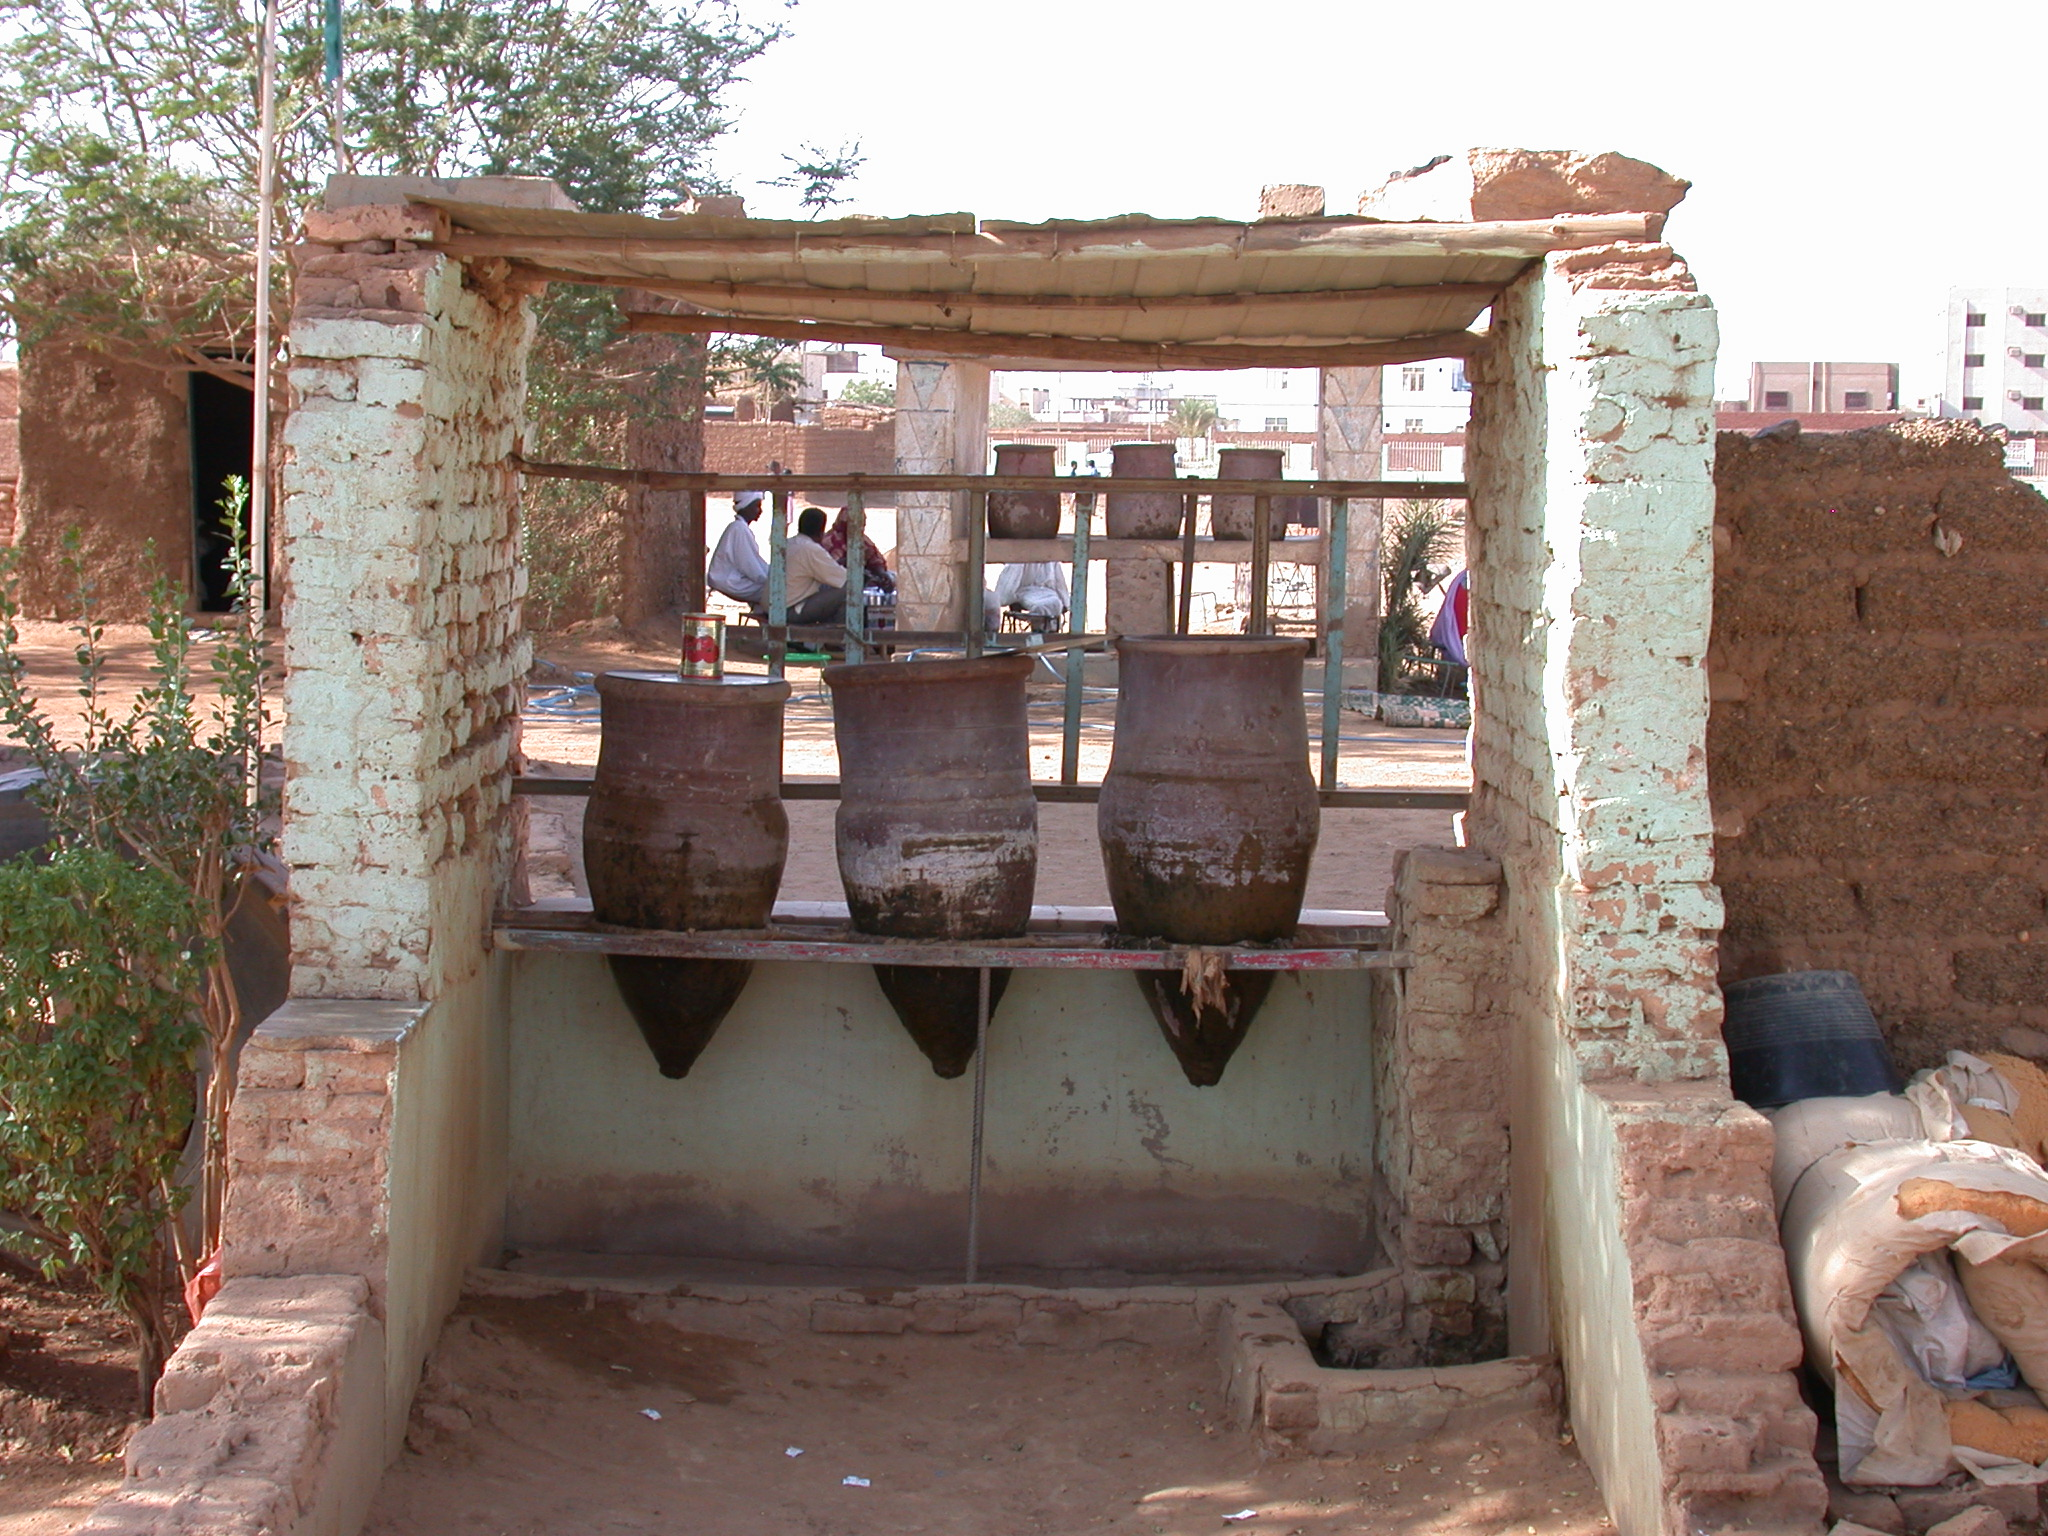 Water Jugs Outside Tombs at Sufi Dancing Site, Omdurman, Sudan